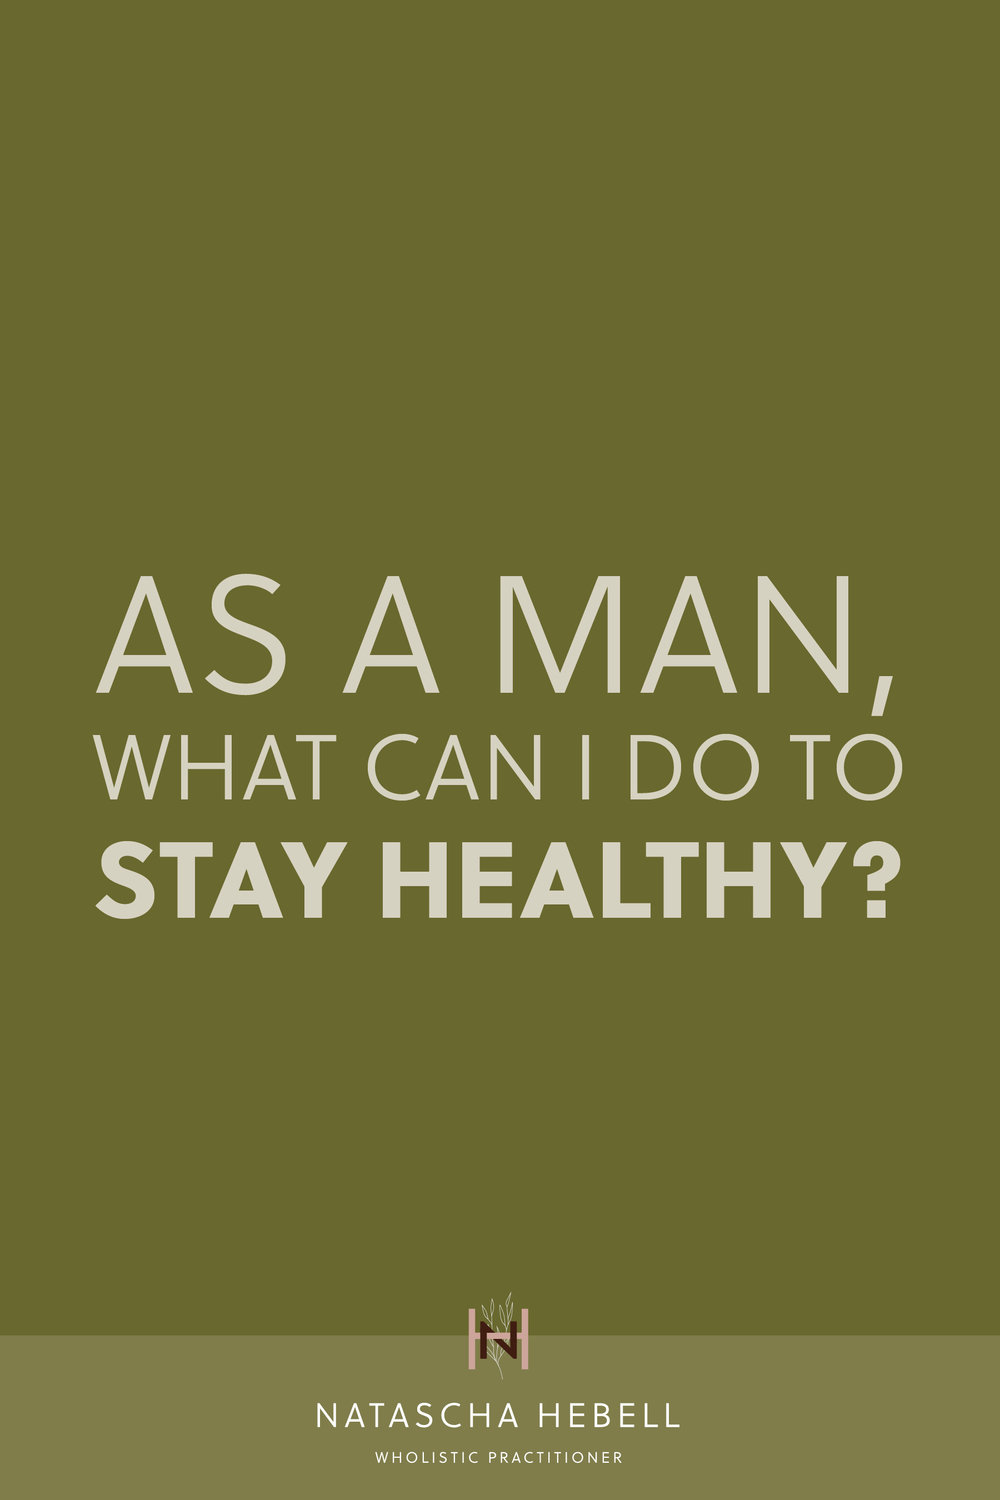 As a man, what can I do to stay healthy?   Natascha Hebell, Wholistic Practitioner